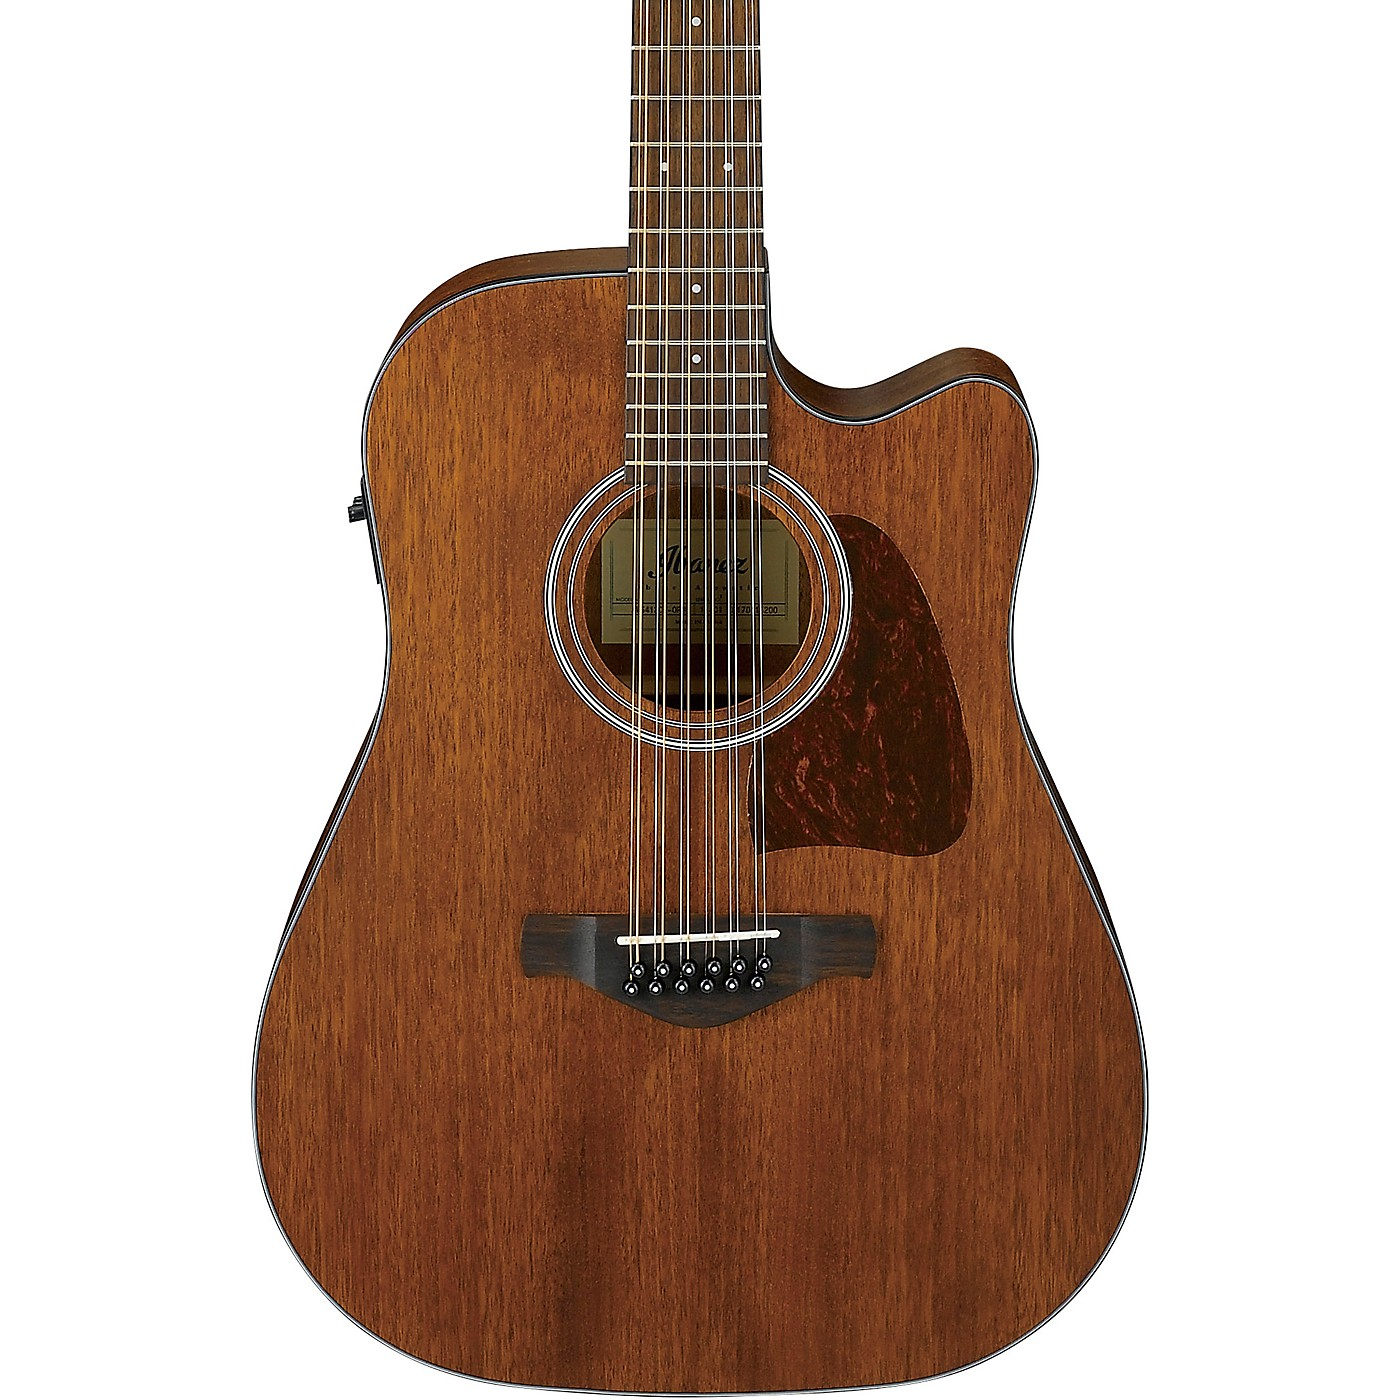 Ibanez AW5412CE-OPN 12-String Acoustic-Electric Guitar thumbnail